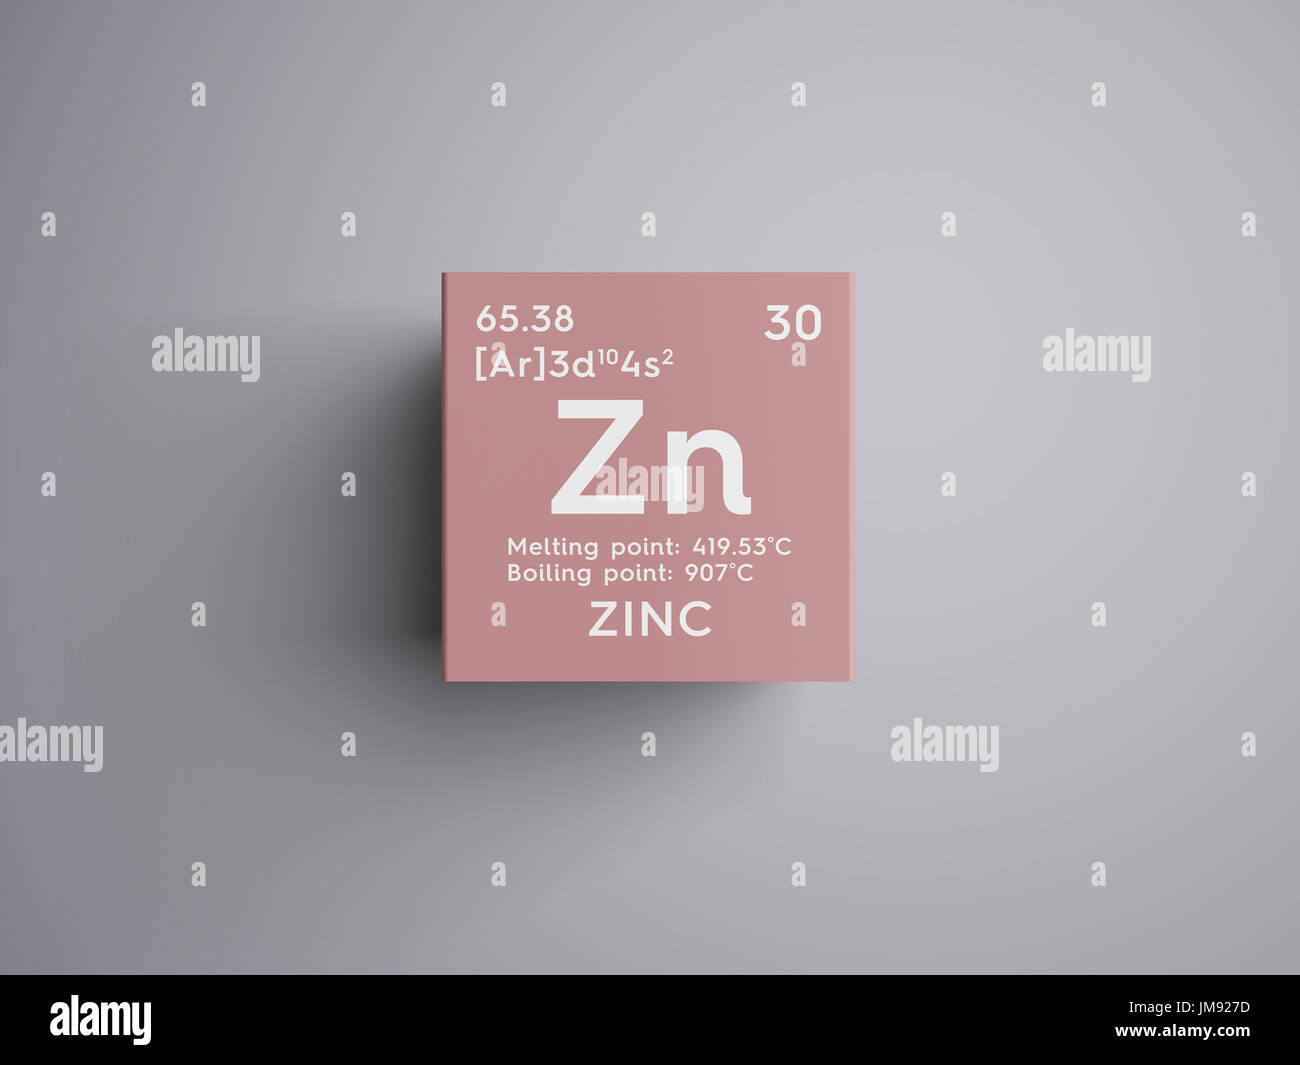 Zinc transition metals chemical element of mendeleevs periodic stock photo zinc transition metals chemical element of mendeleevs periodic table zinc in square cube creative concept gamestrikefo Gallery